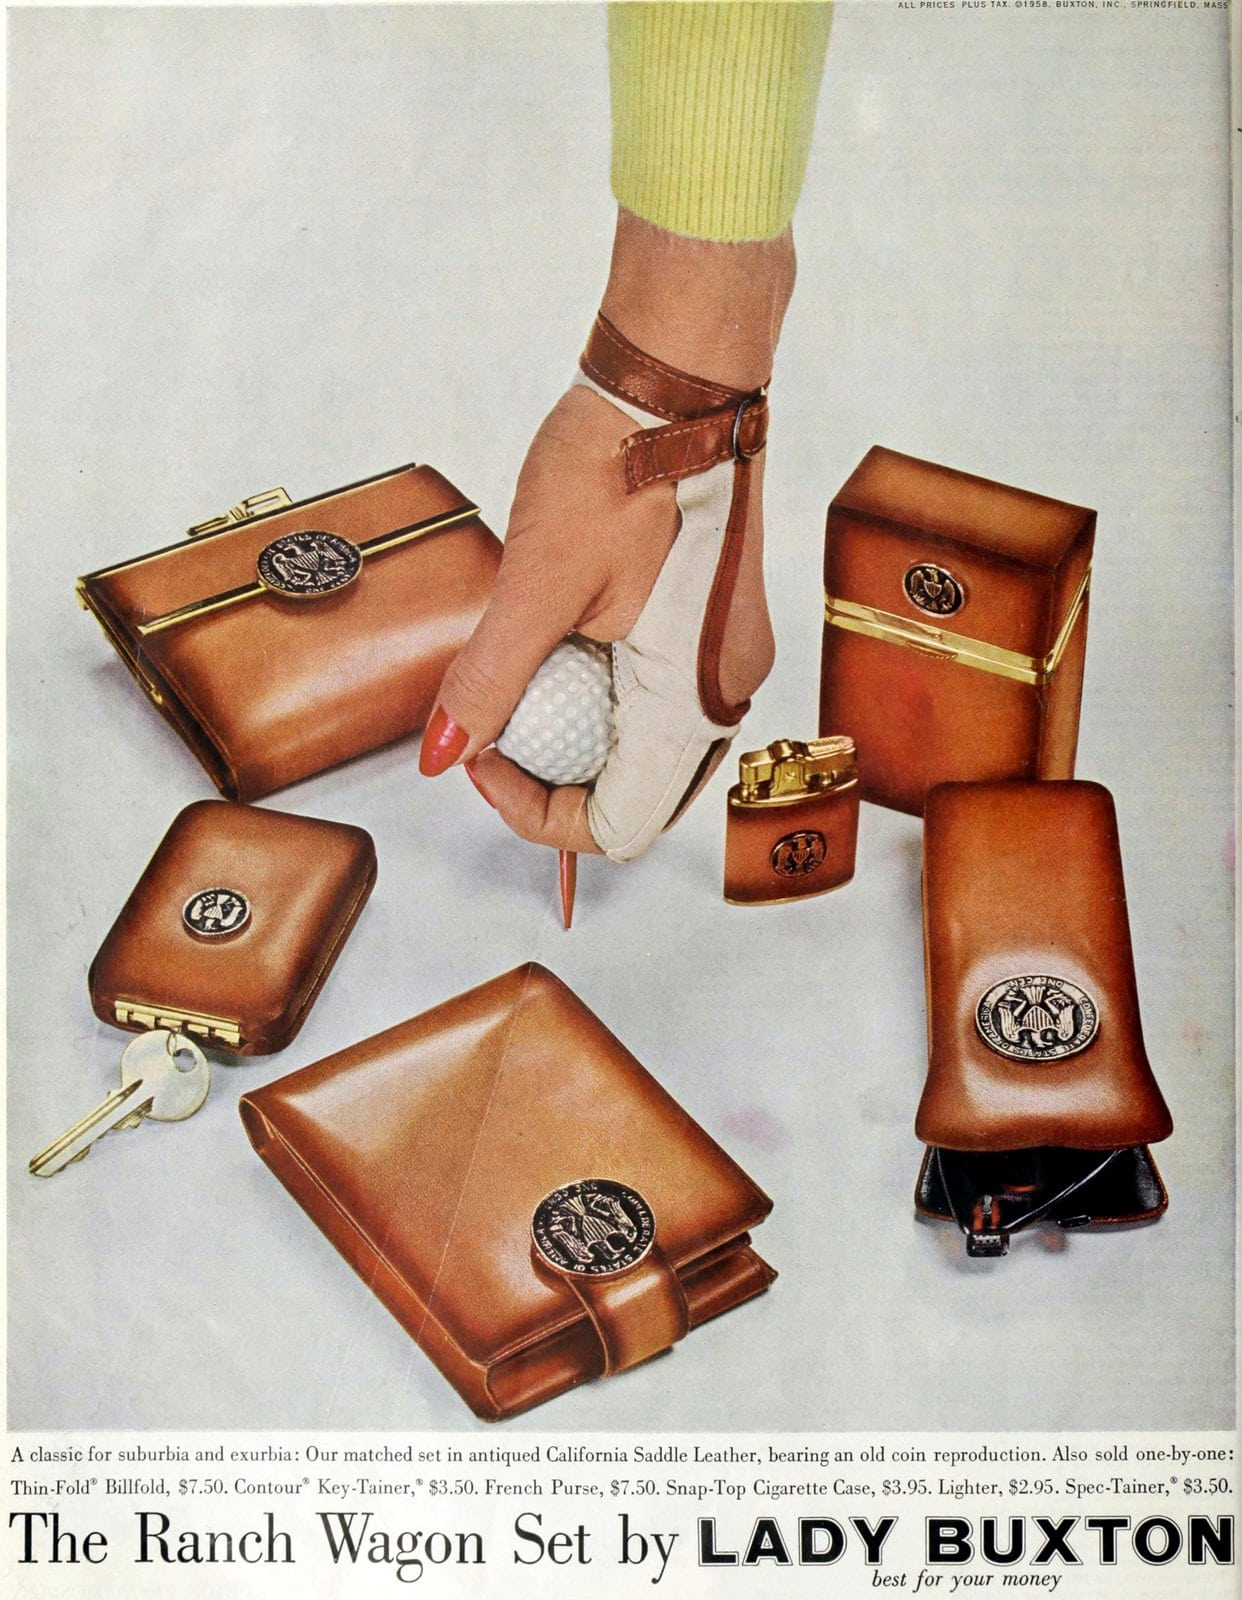 Retro brown leather Ranch Wagon wallet set from Lady Buxton (1958)